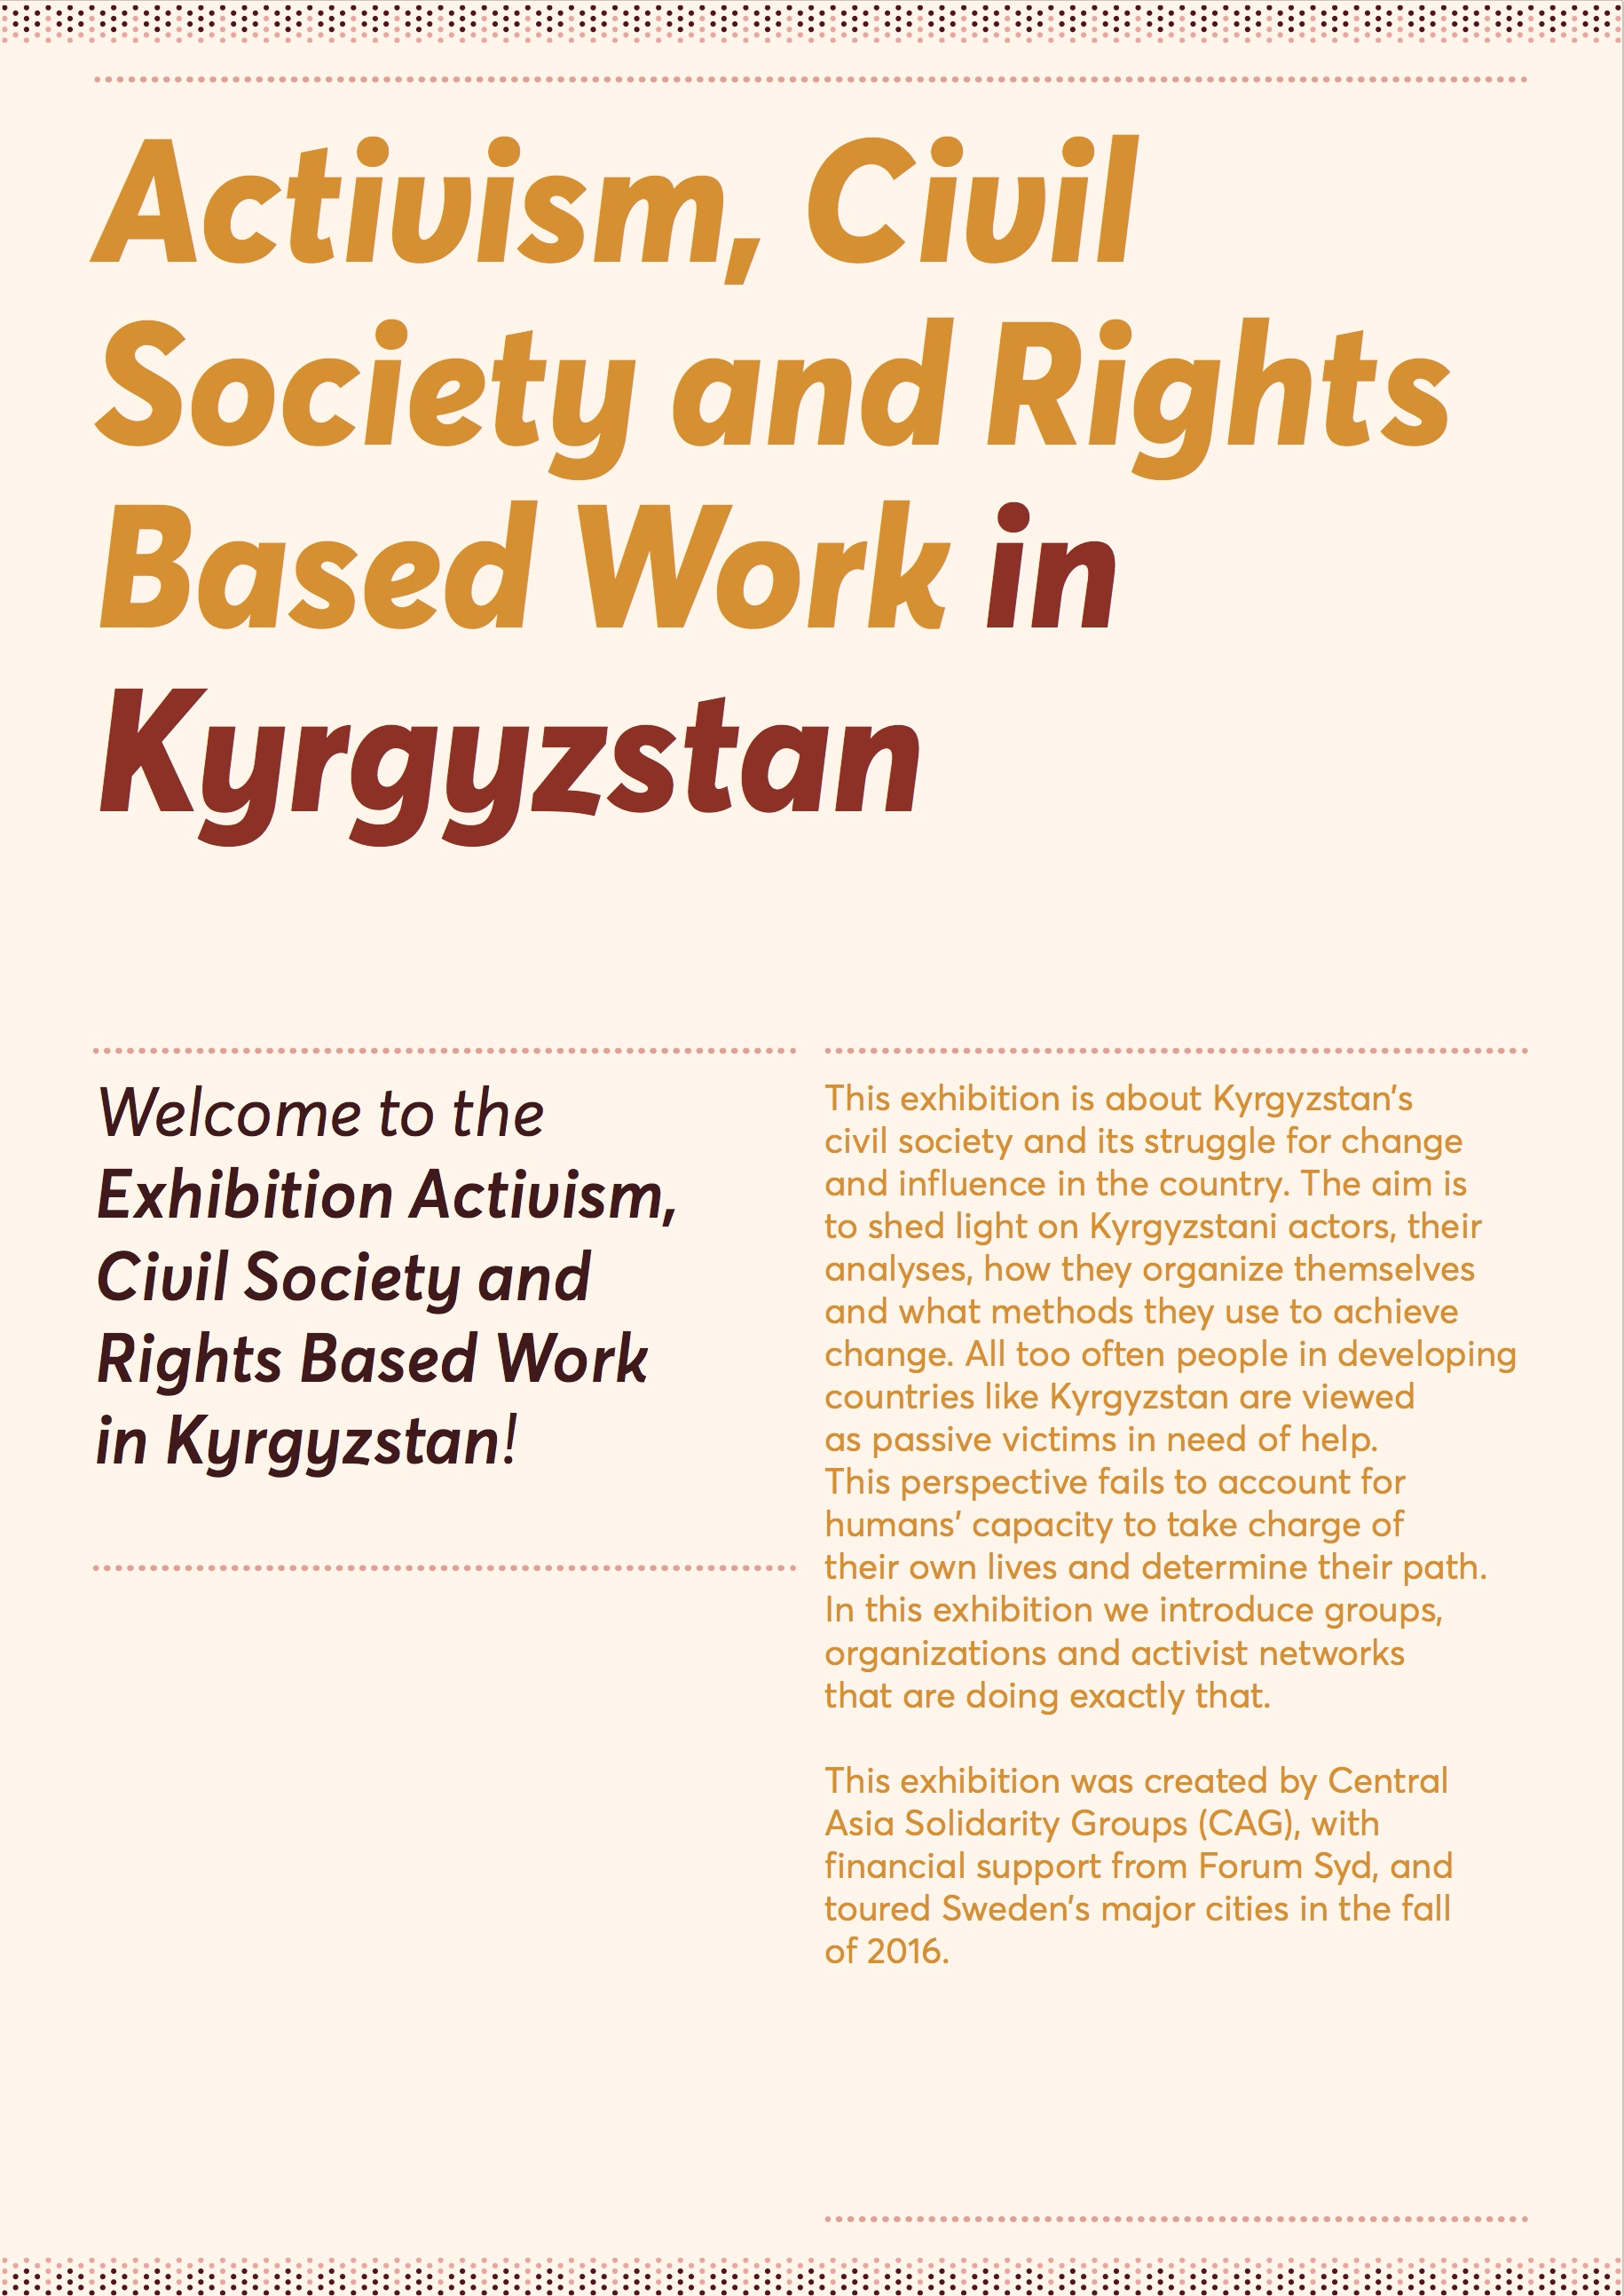 Activism, Civil Society and Rights Based Work in Kyrgyzstan